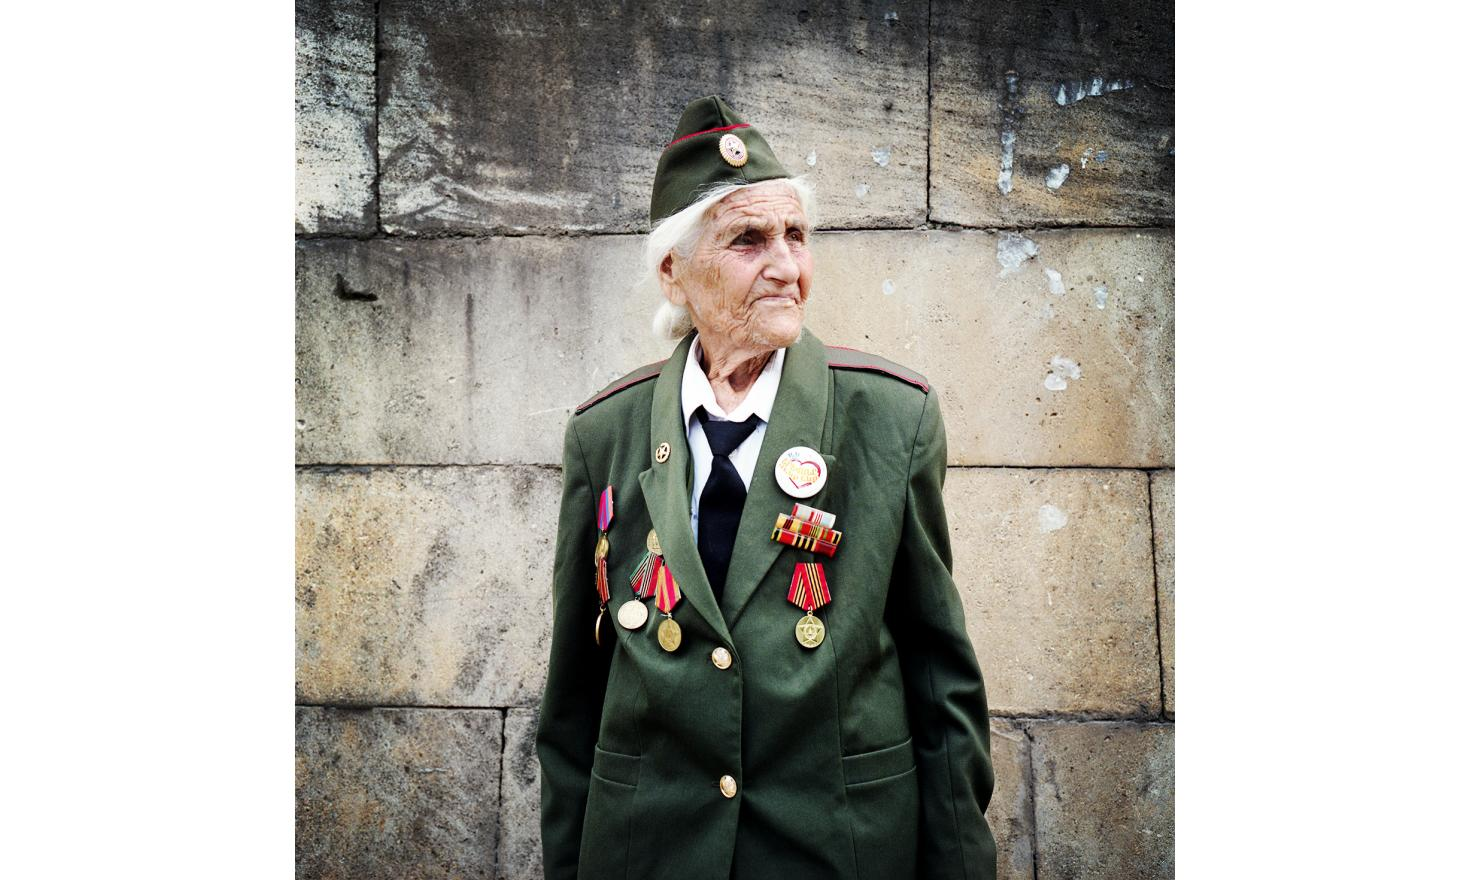 A veteran from the Great Patriotic War with her medals, the day of the commemoration of the 20th anniversary of the independence of Nagorno-Karabagh